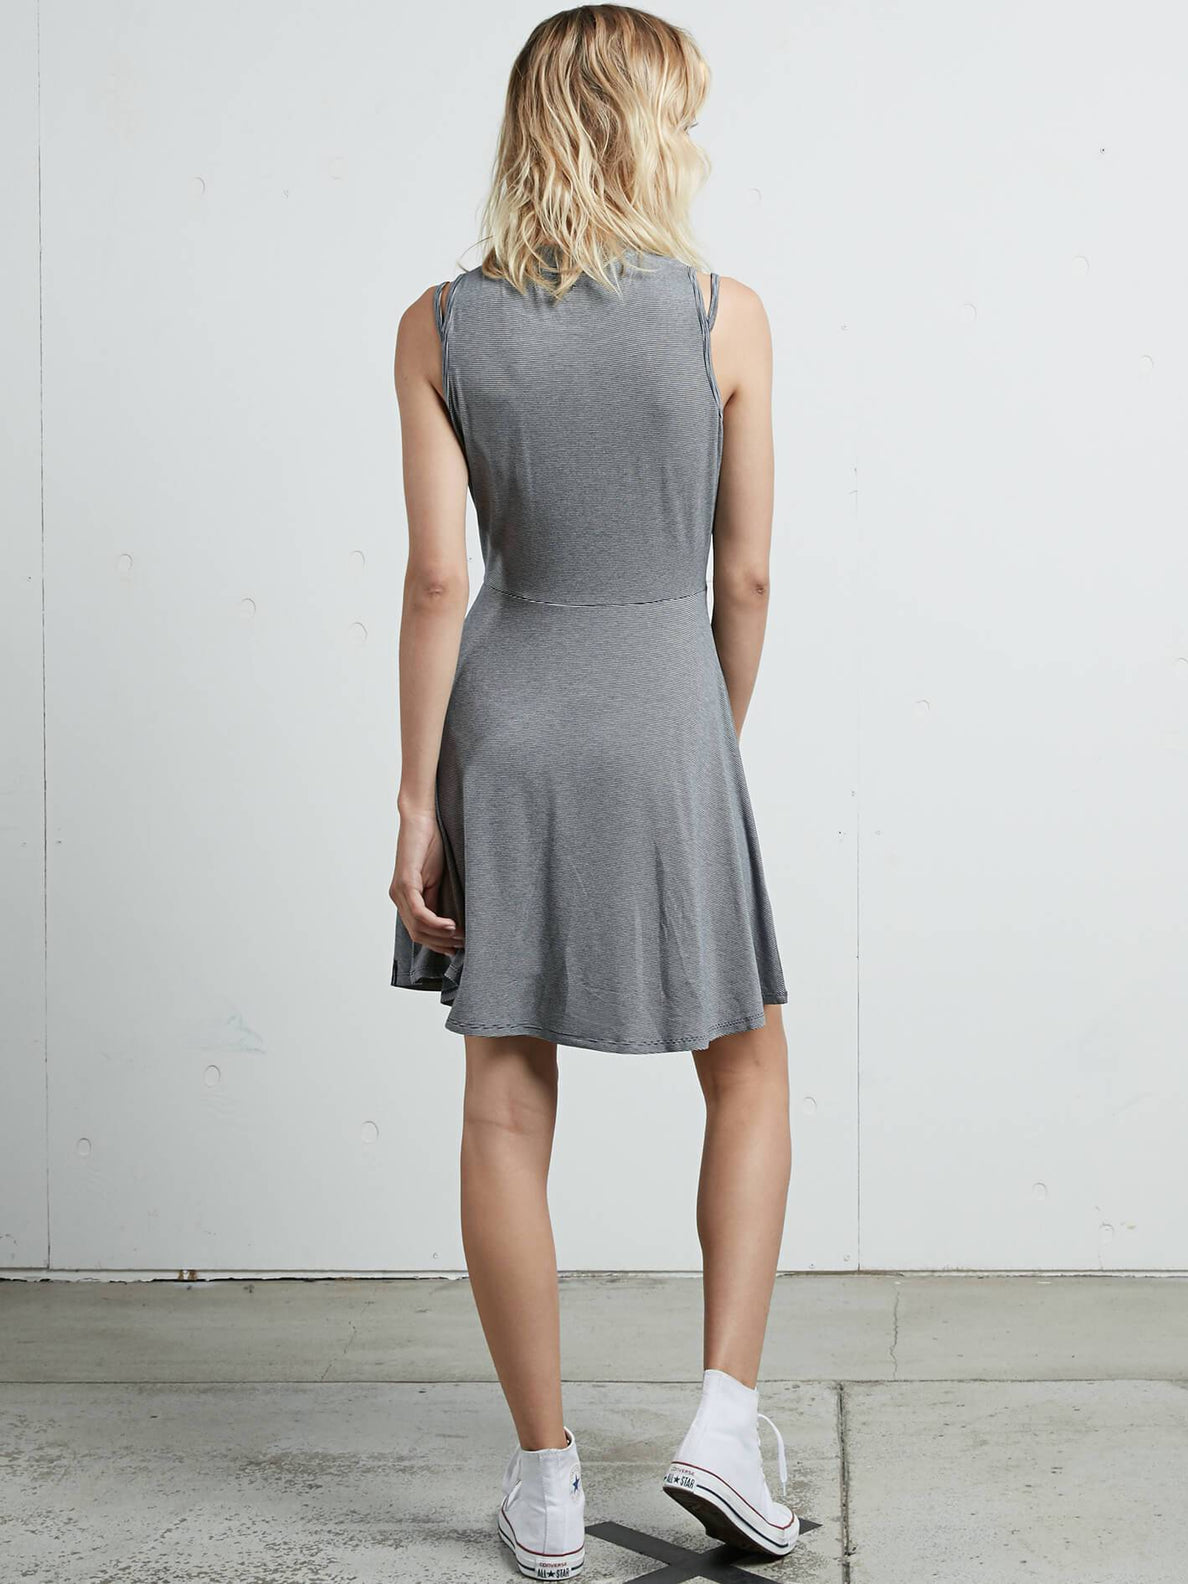 Open Arms Dress In Vintage Navy, Back View